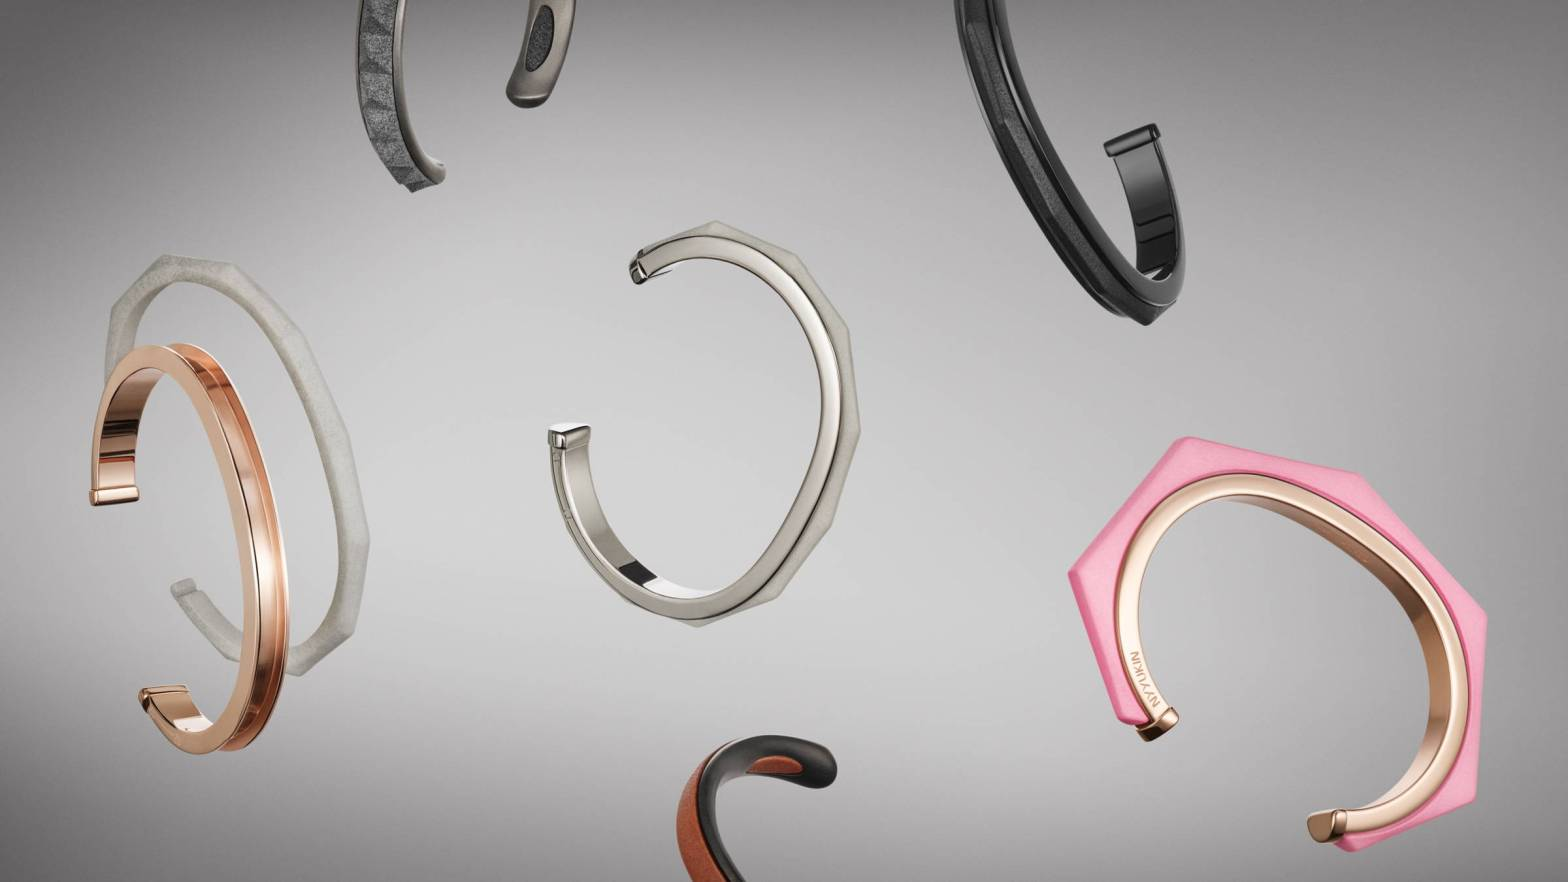 Thumbnail for Brand of the Day: Nyyukin, Jewelry Inspired by Graphic Design